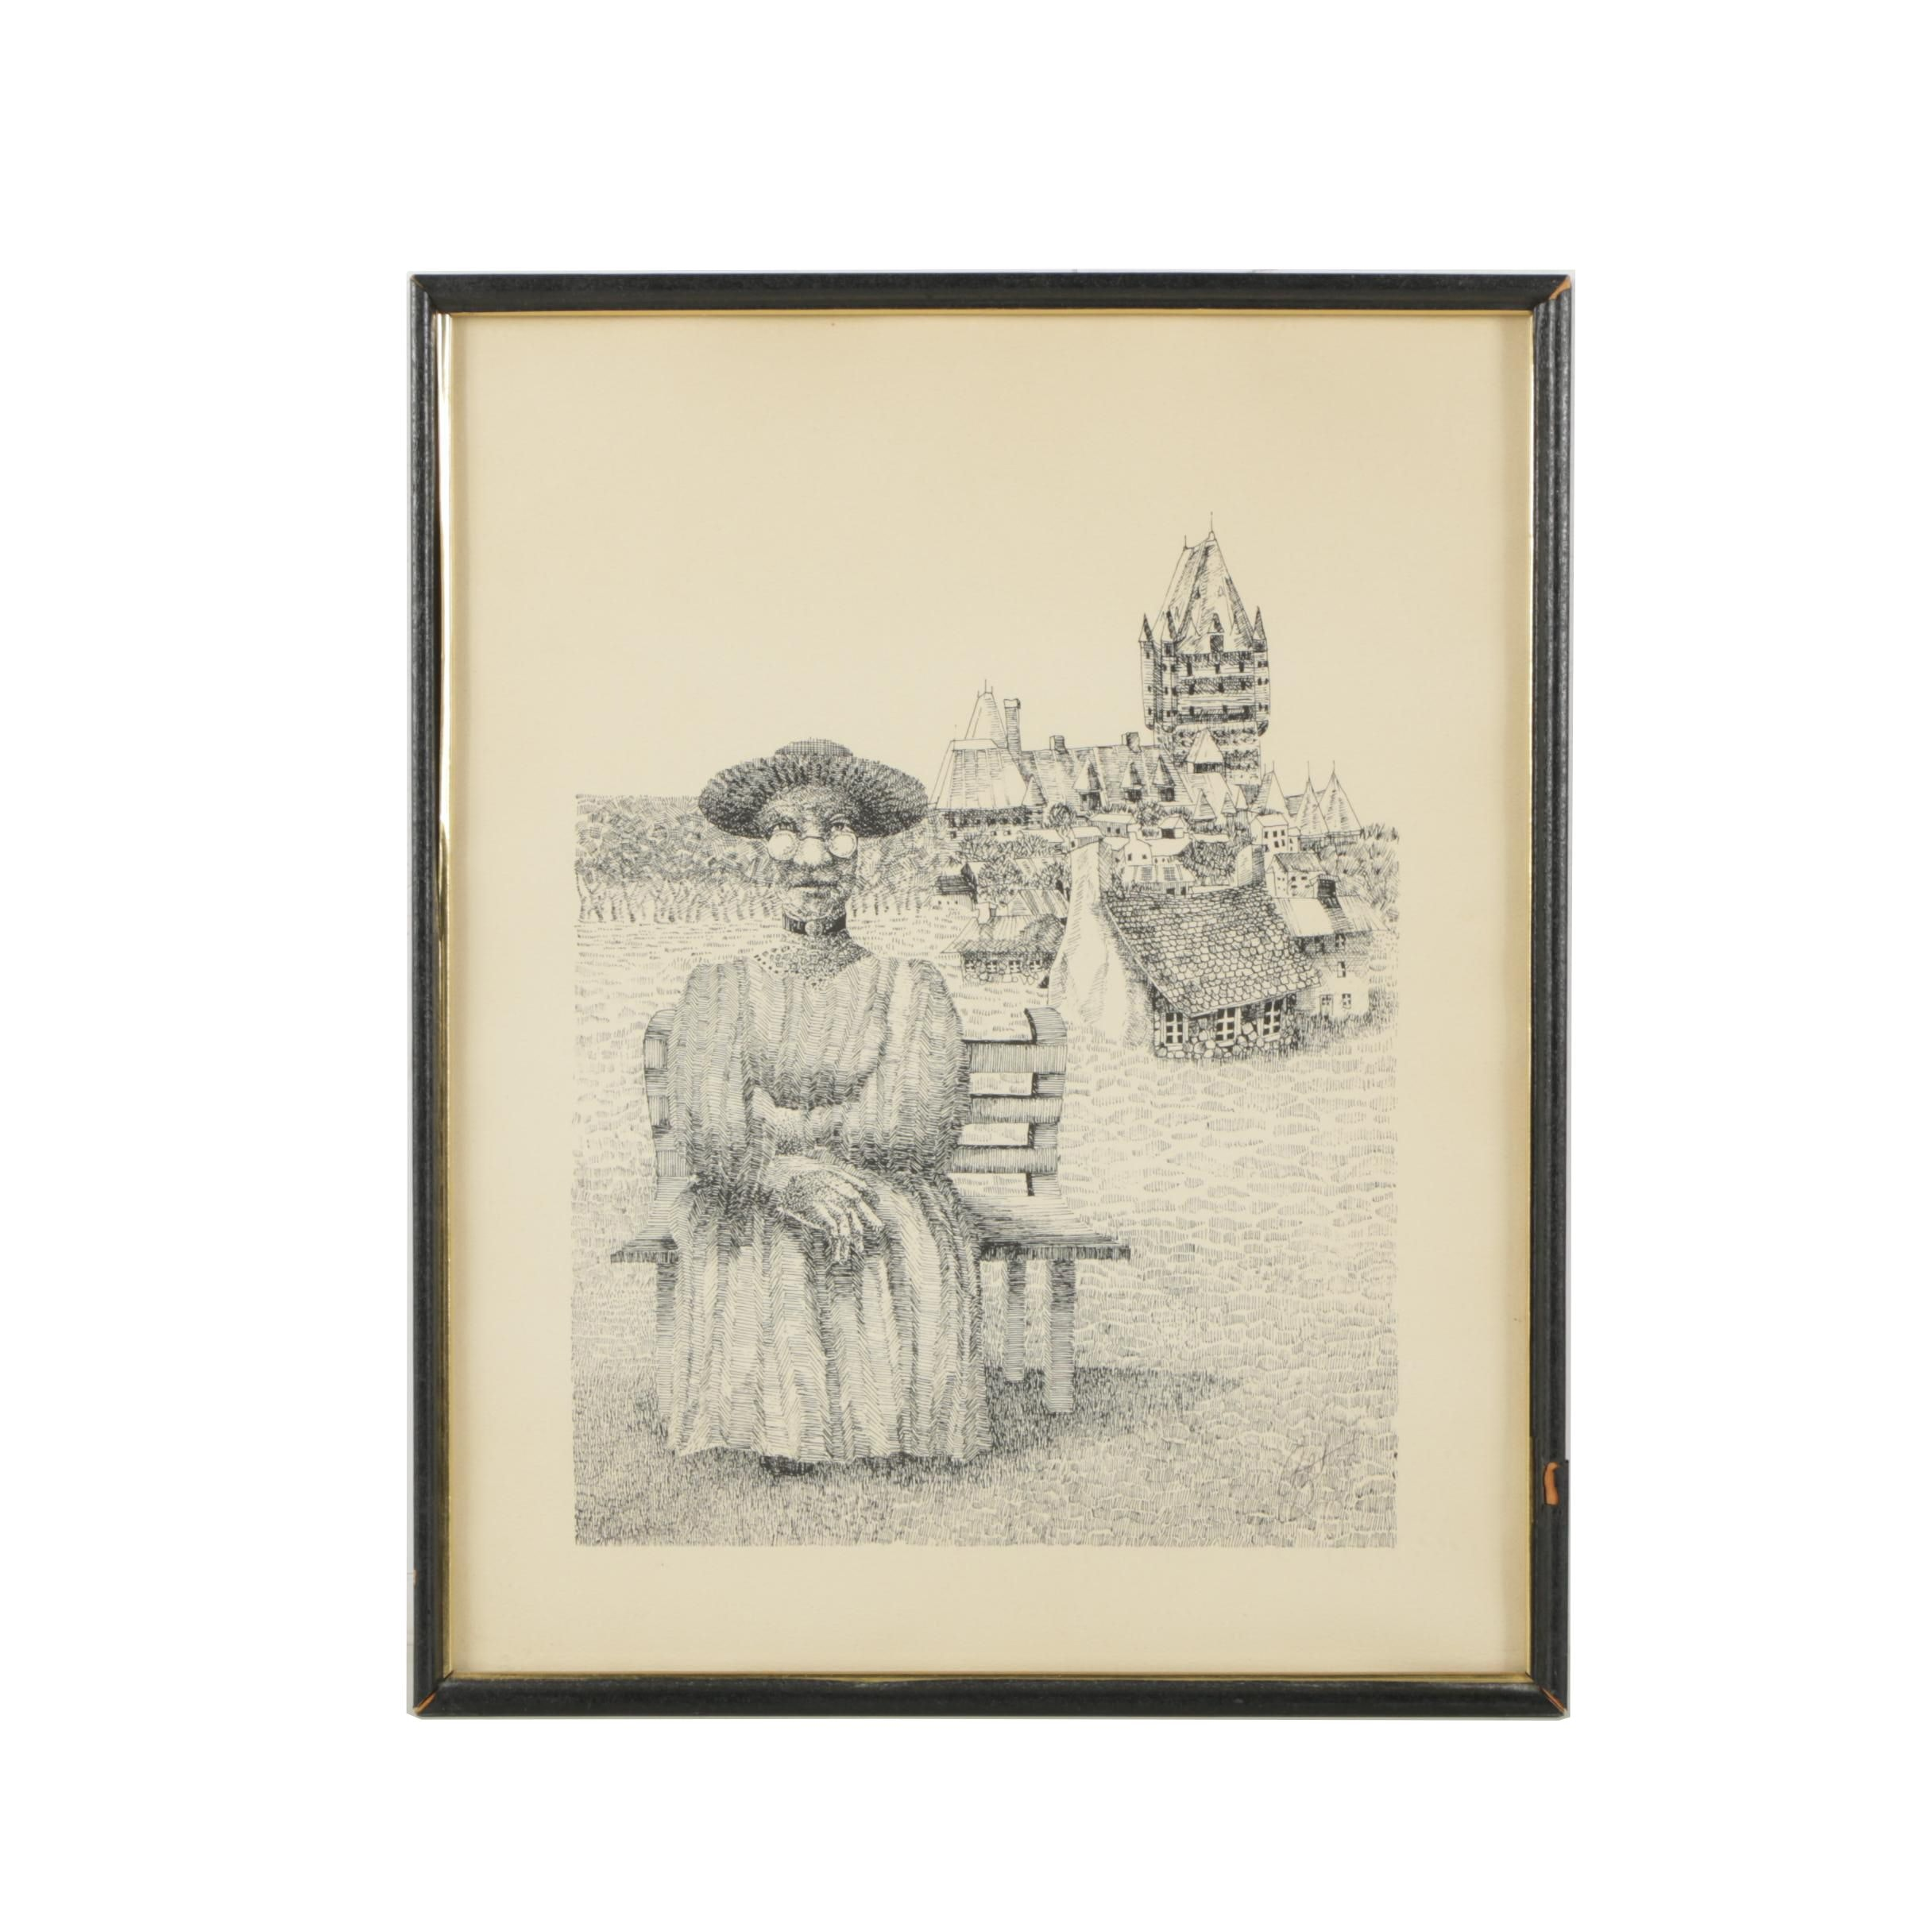 Lithograph Print After Ink Drawing of Padre on a Bench